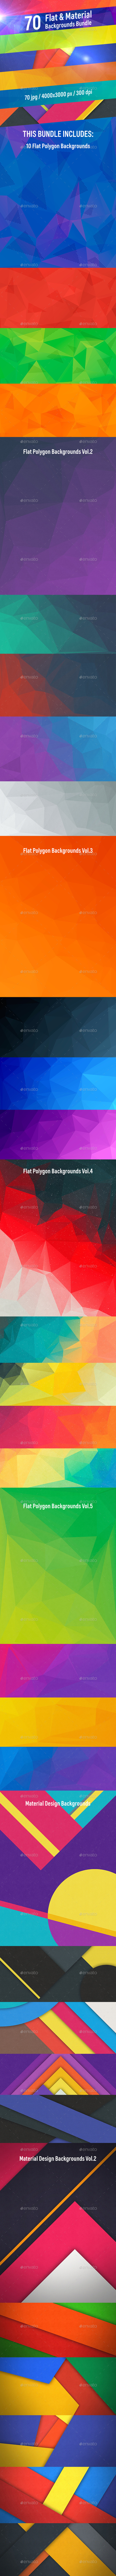 70 Flat & Material Backgrounds Bundle - Abstract Backgrounds